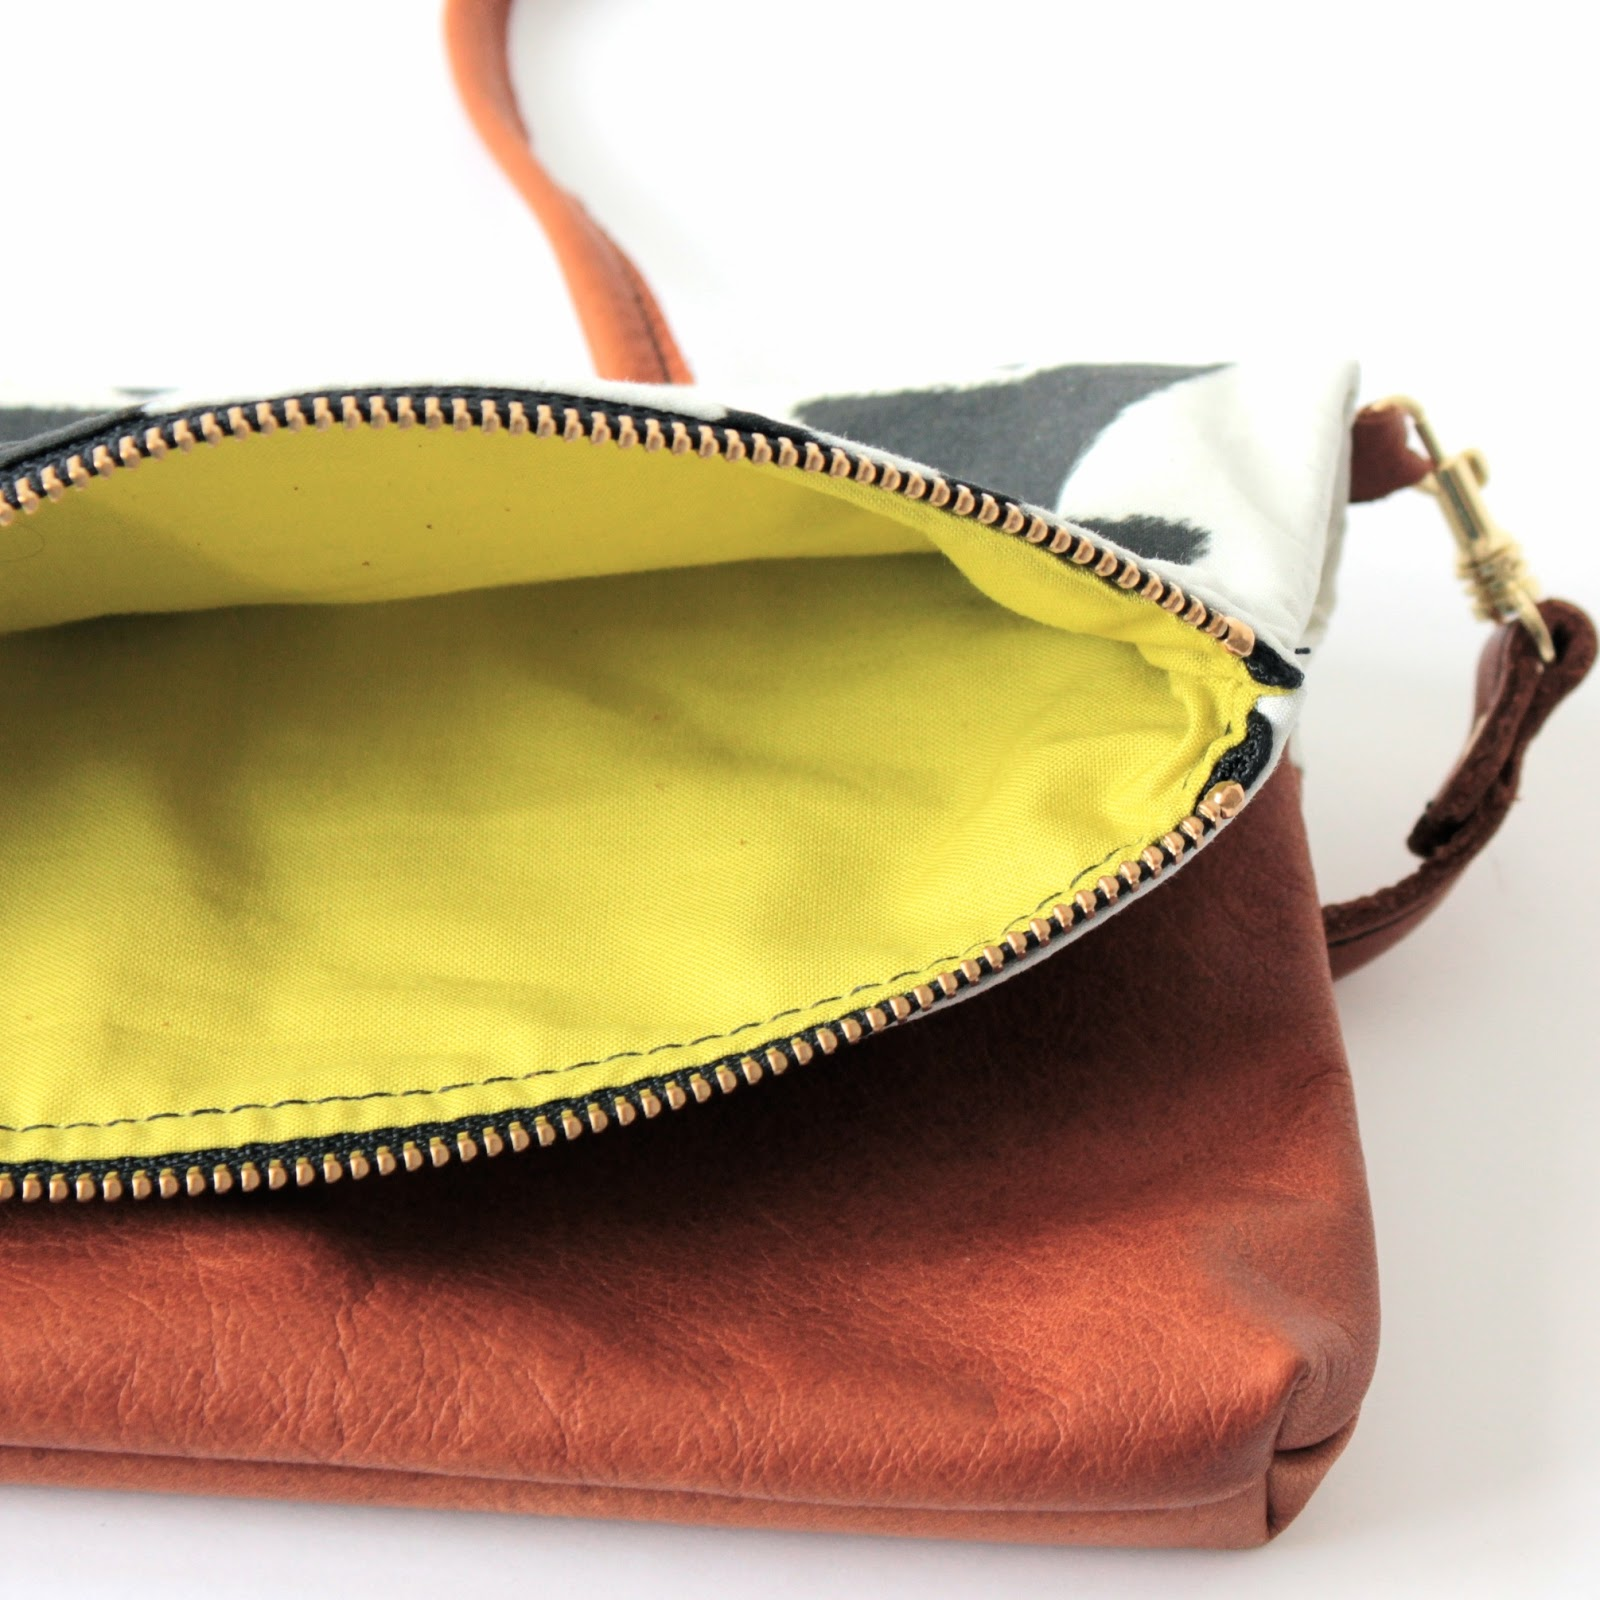 Antelope Shop Anneb designs Aspen Folded Clutch Citrine Lining Boheme Leather bag antelopeshop.com Lexie Blush